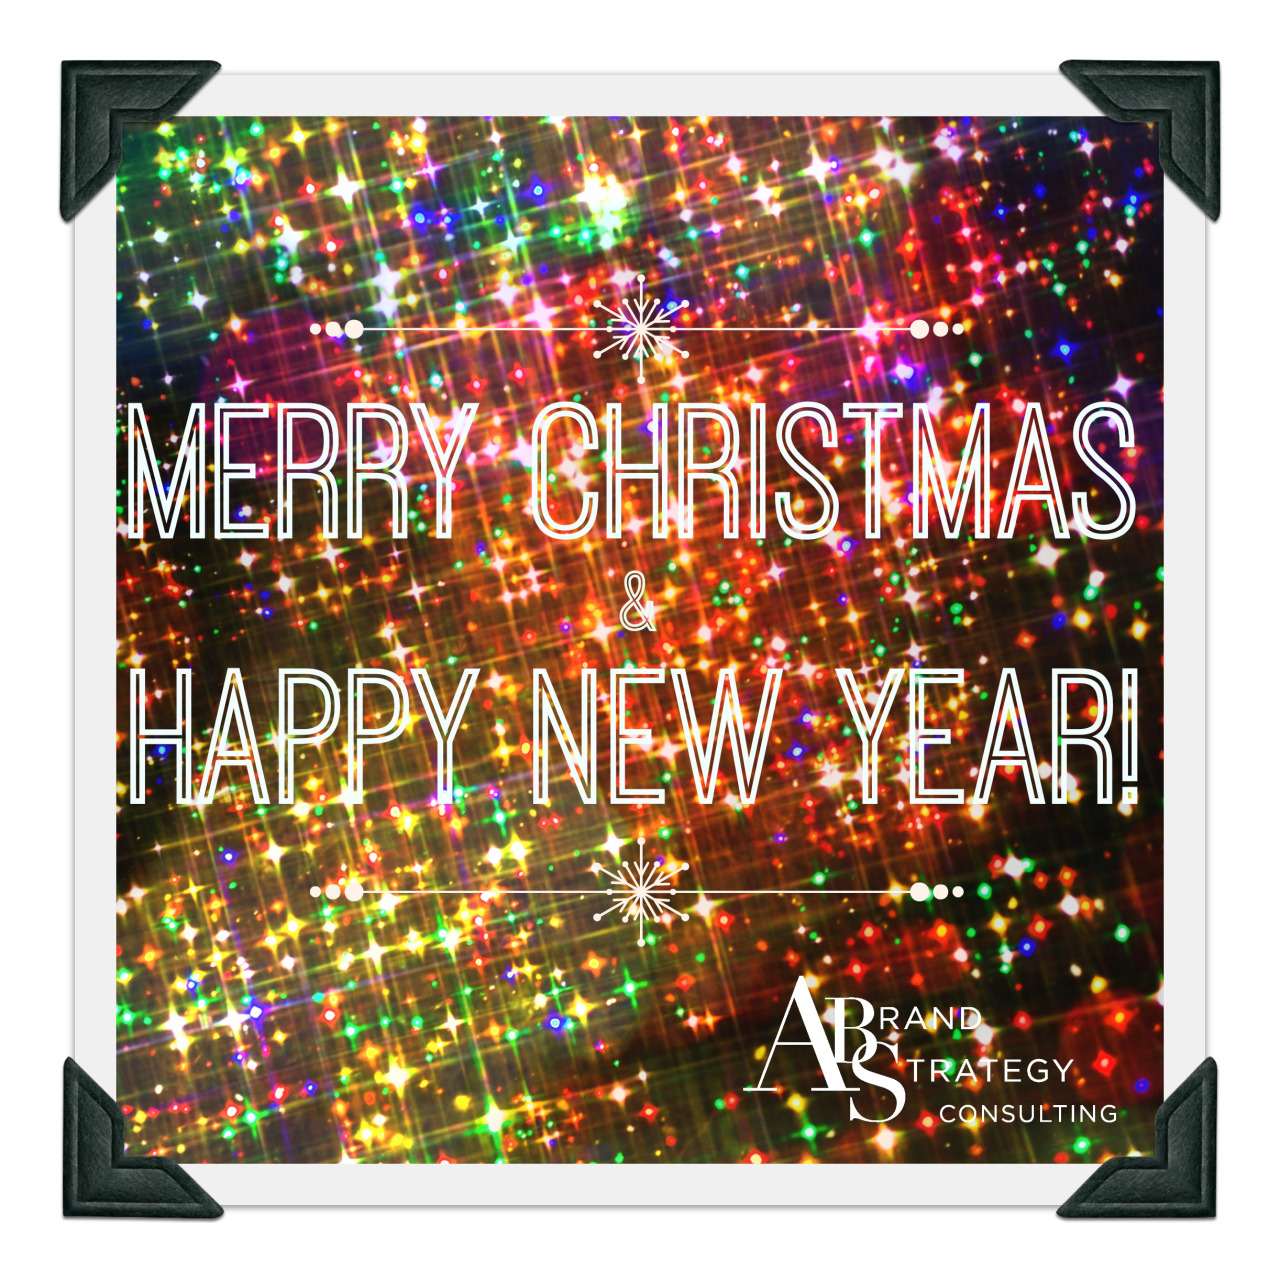 Wishing a merry Christmas and a Happy New Year to you all! Thank you for a fantastic first year of business. See you in 2015!       Best,       Afton         www.abrandstrategy.com